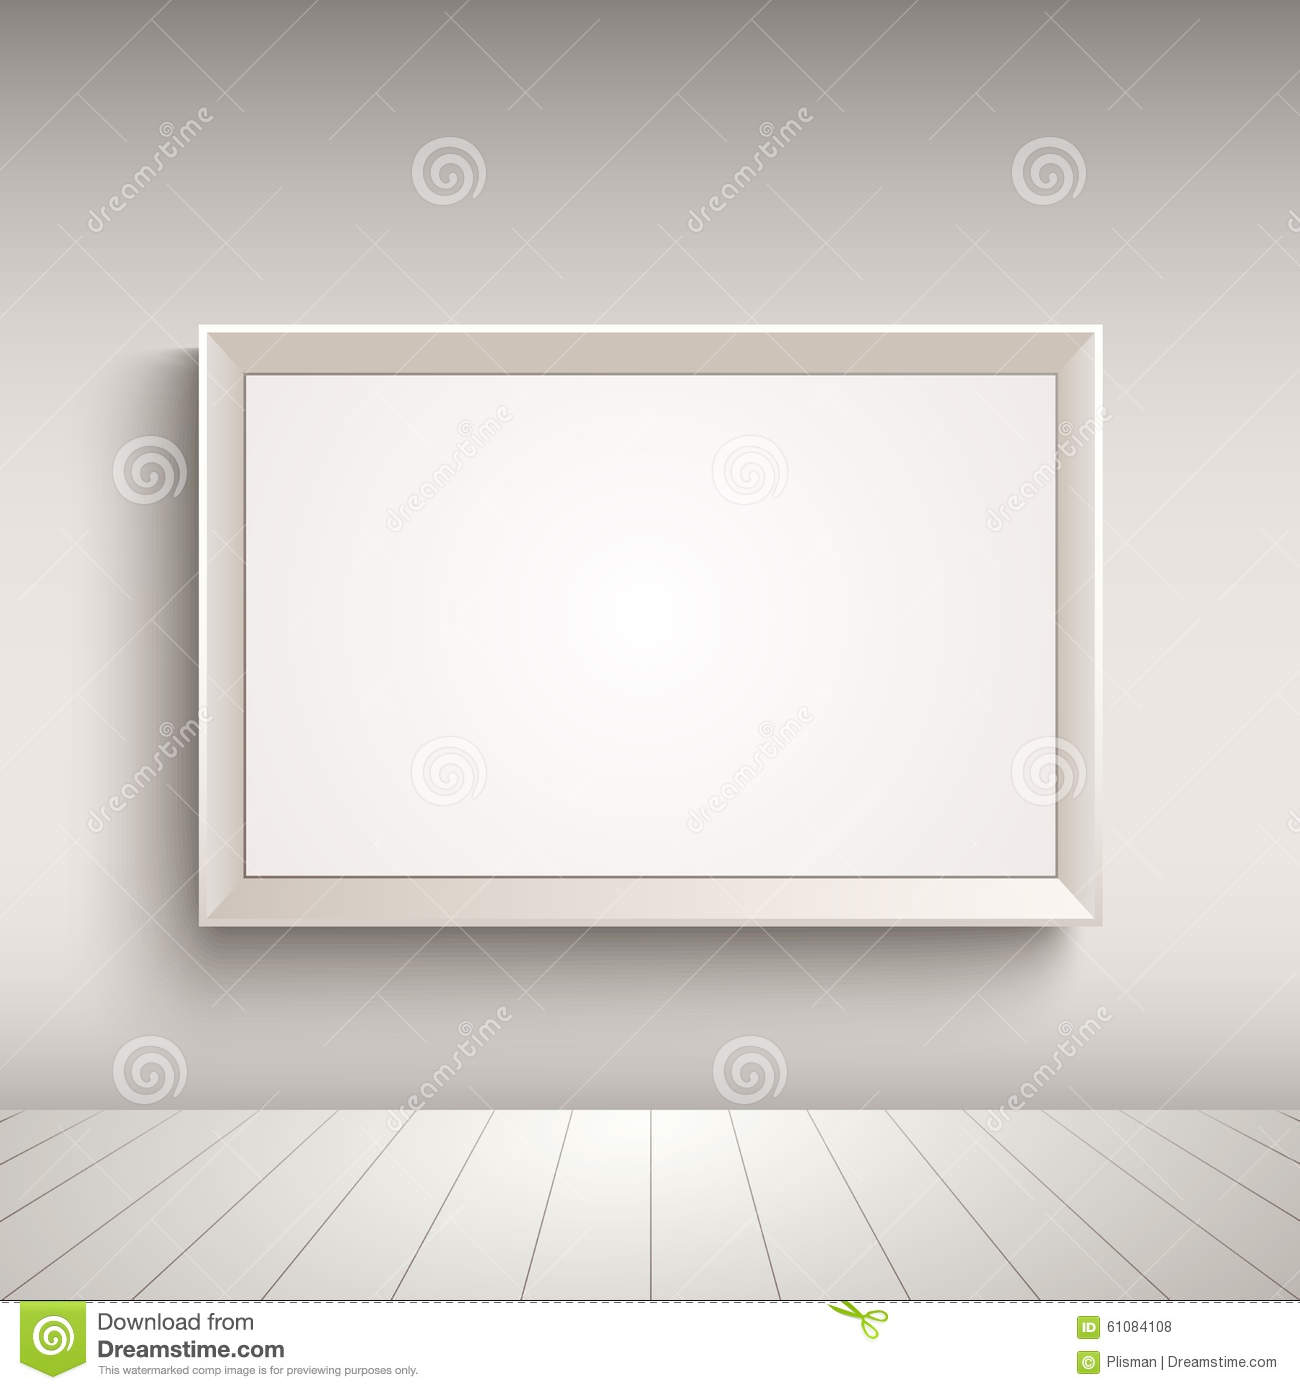 Empty Advertising Board On The Wall Template Stock Vector ...